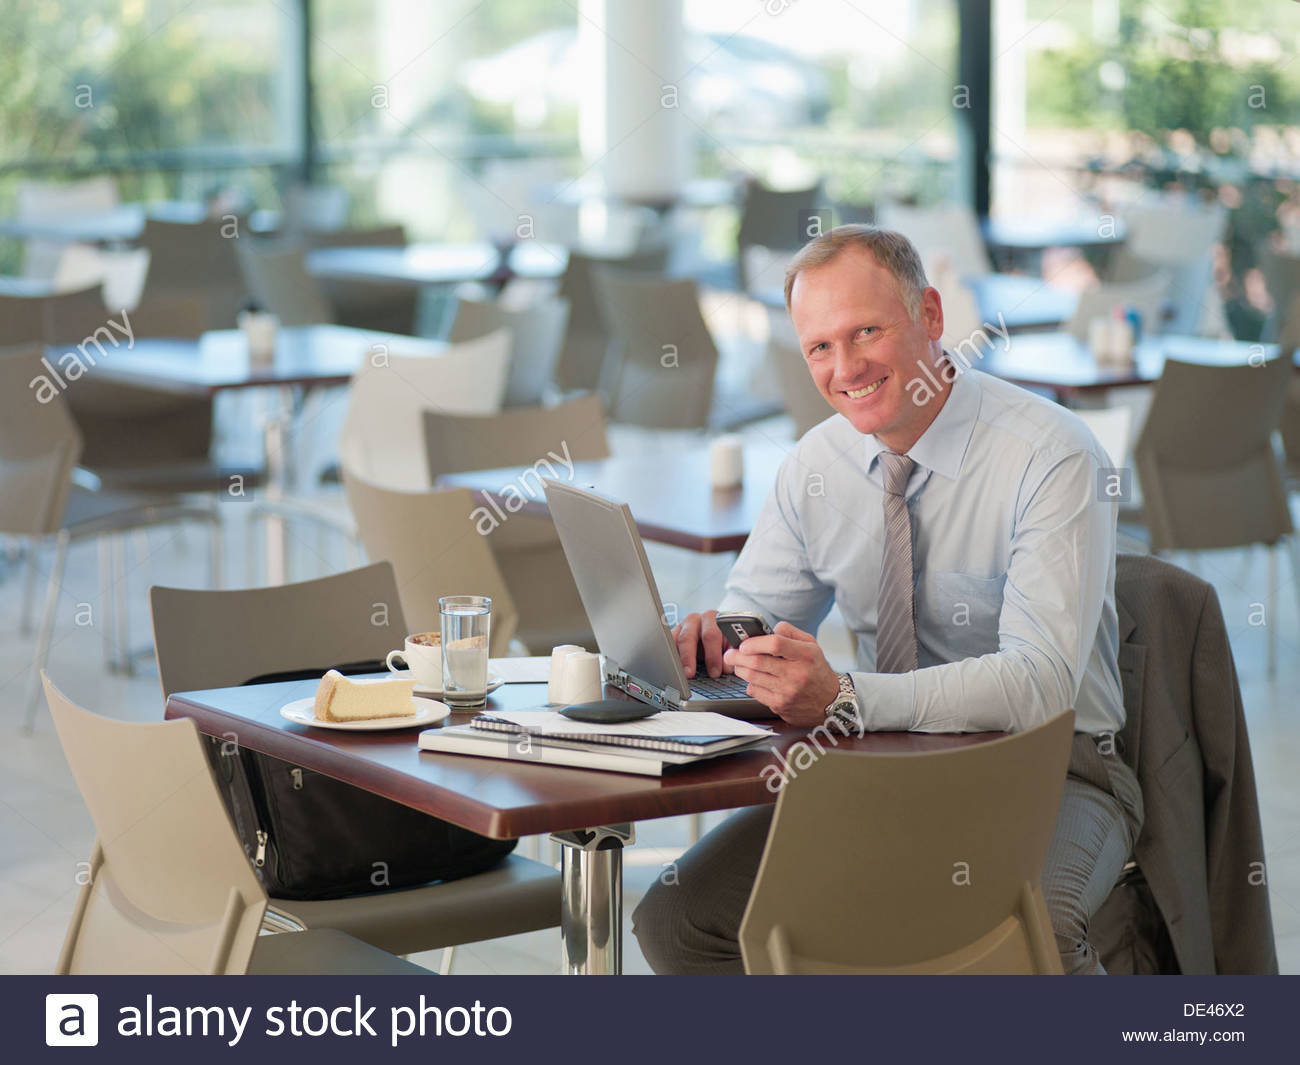 Businessman looking at cell phone in cafeteria - Stock Image